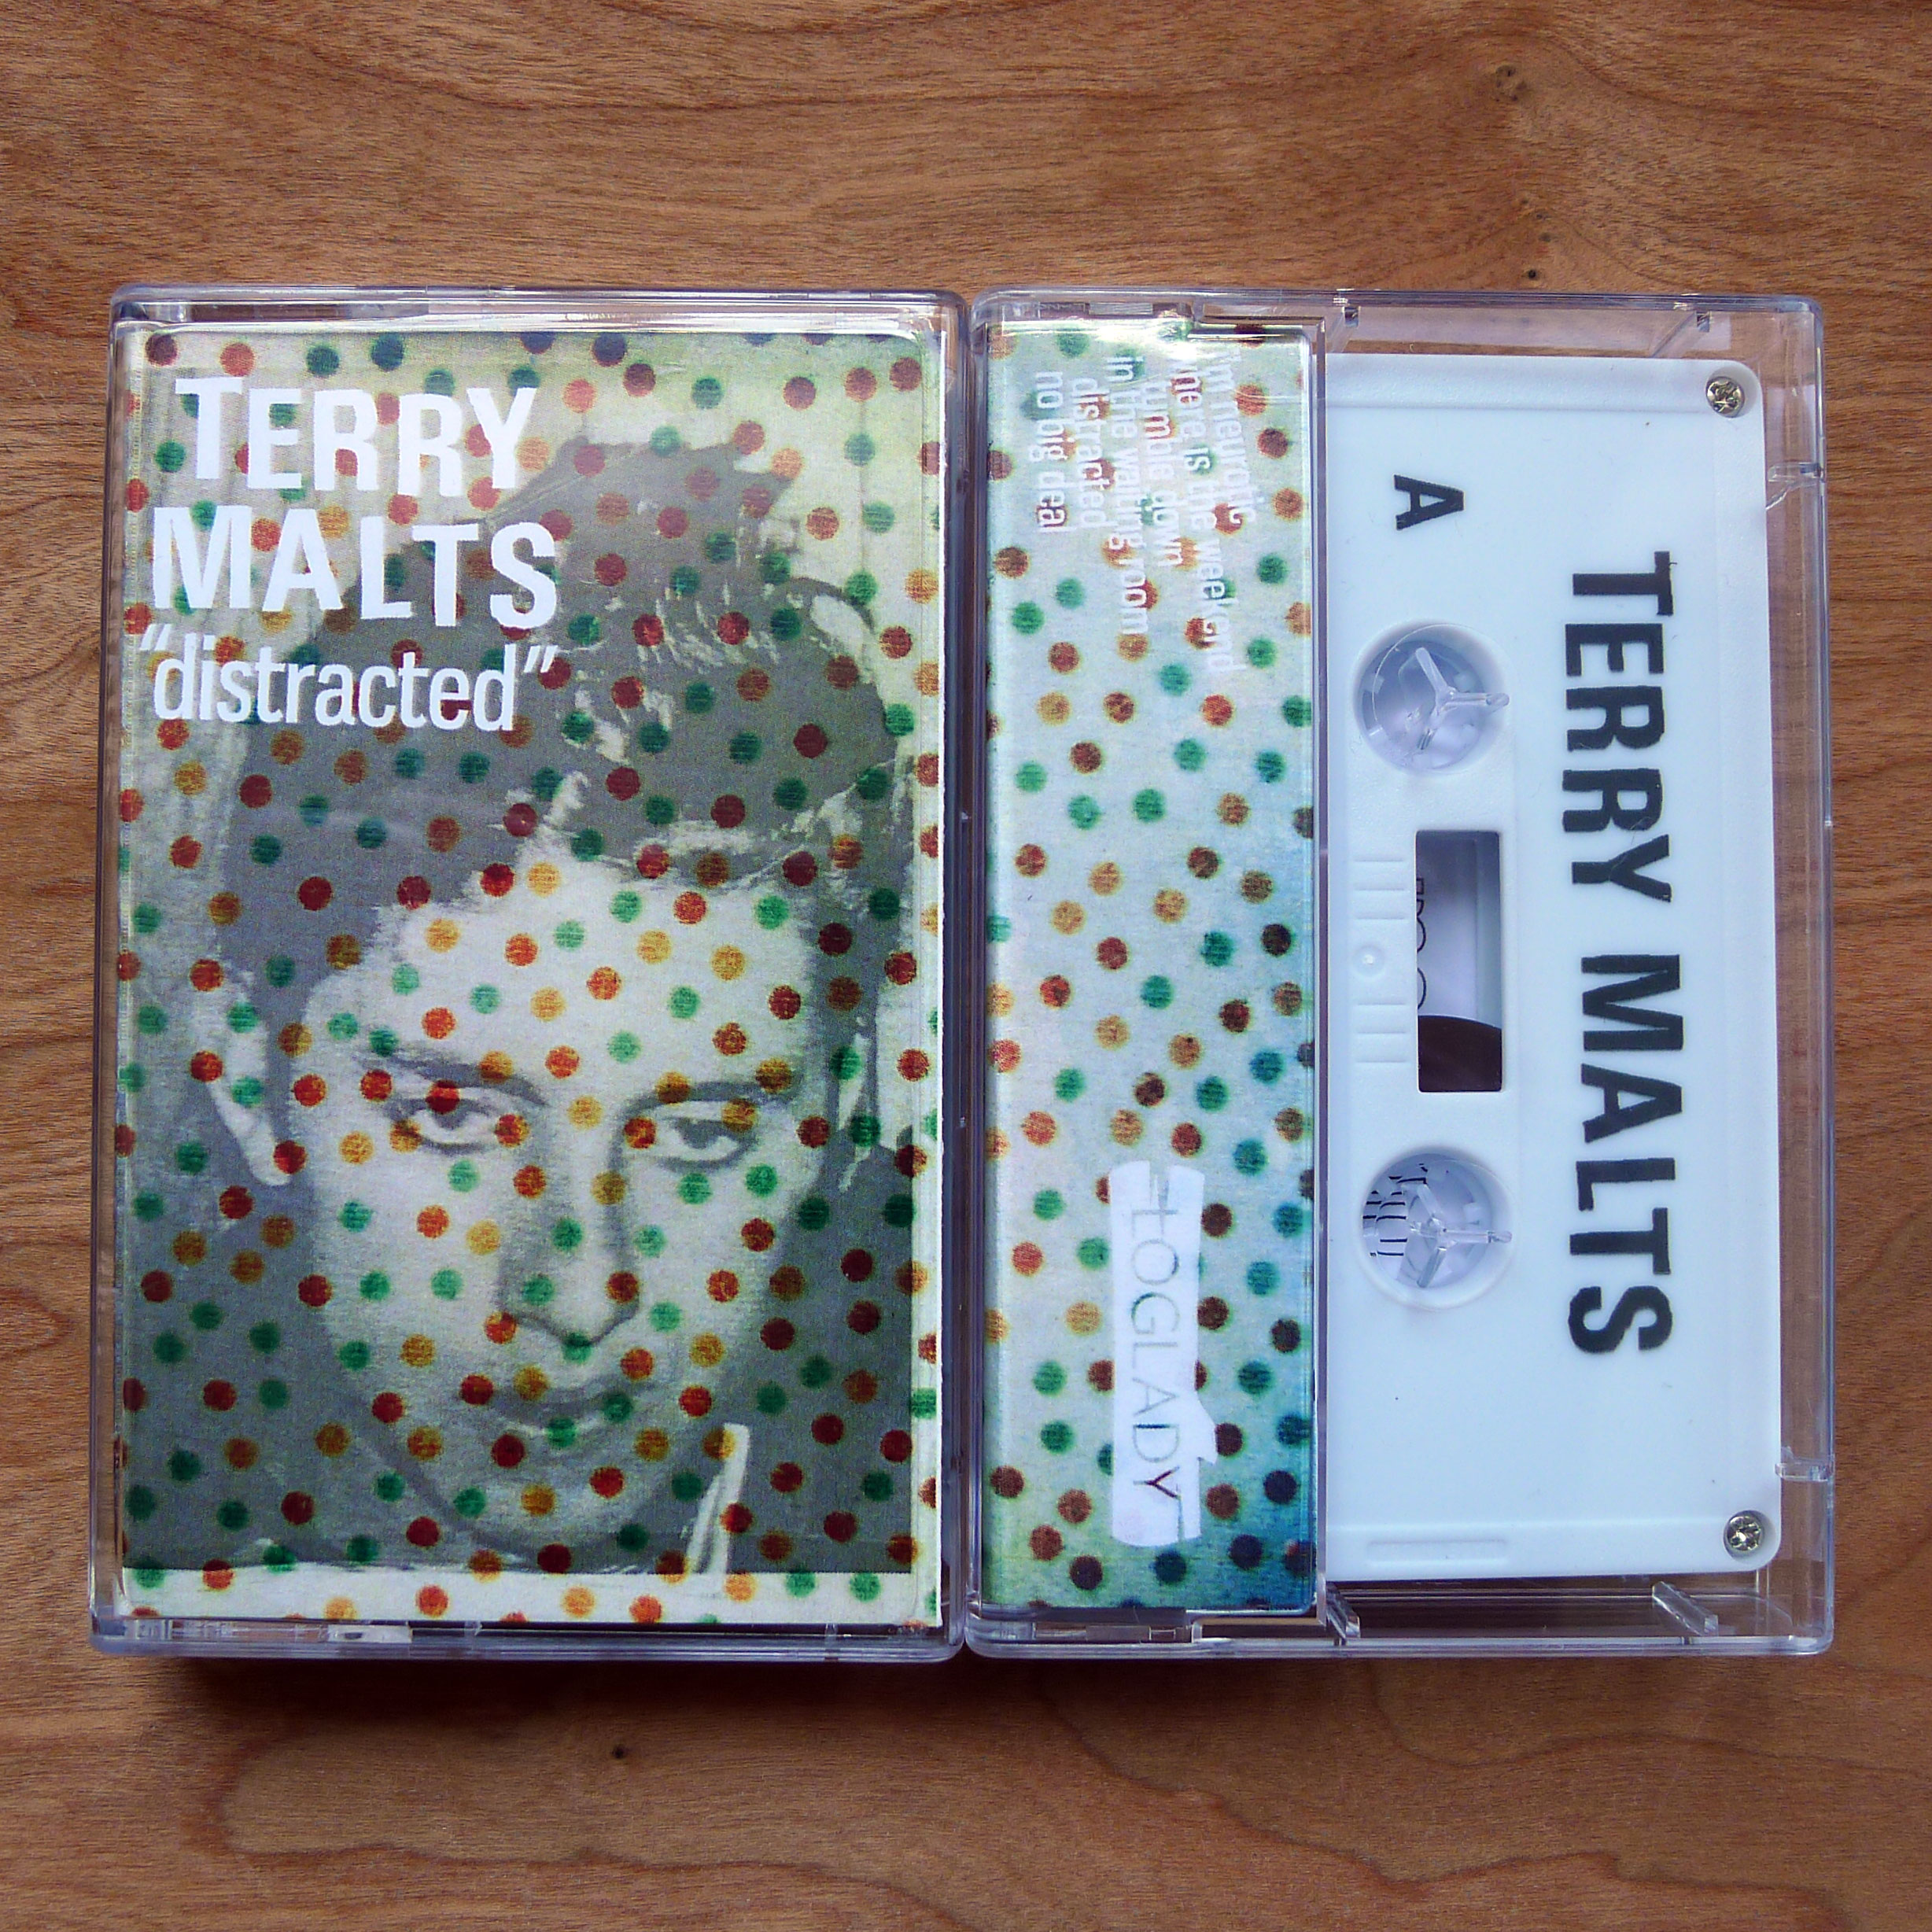 Distracted is Terry Malts six song cassette tape which has a double A side for nonstop listening. These post-punk, punk anthems will save you from jumping off a building while you're at work and get even the most clean cut of individuals induced in a beer frenzy.